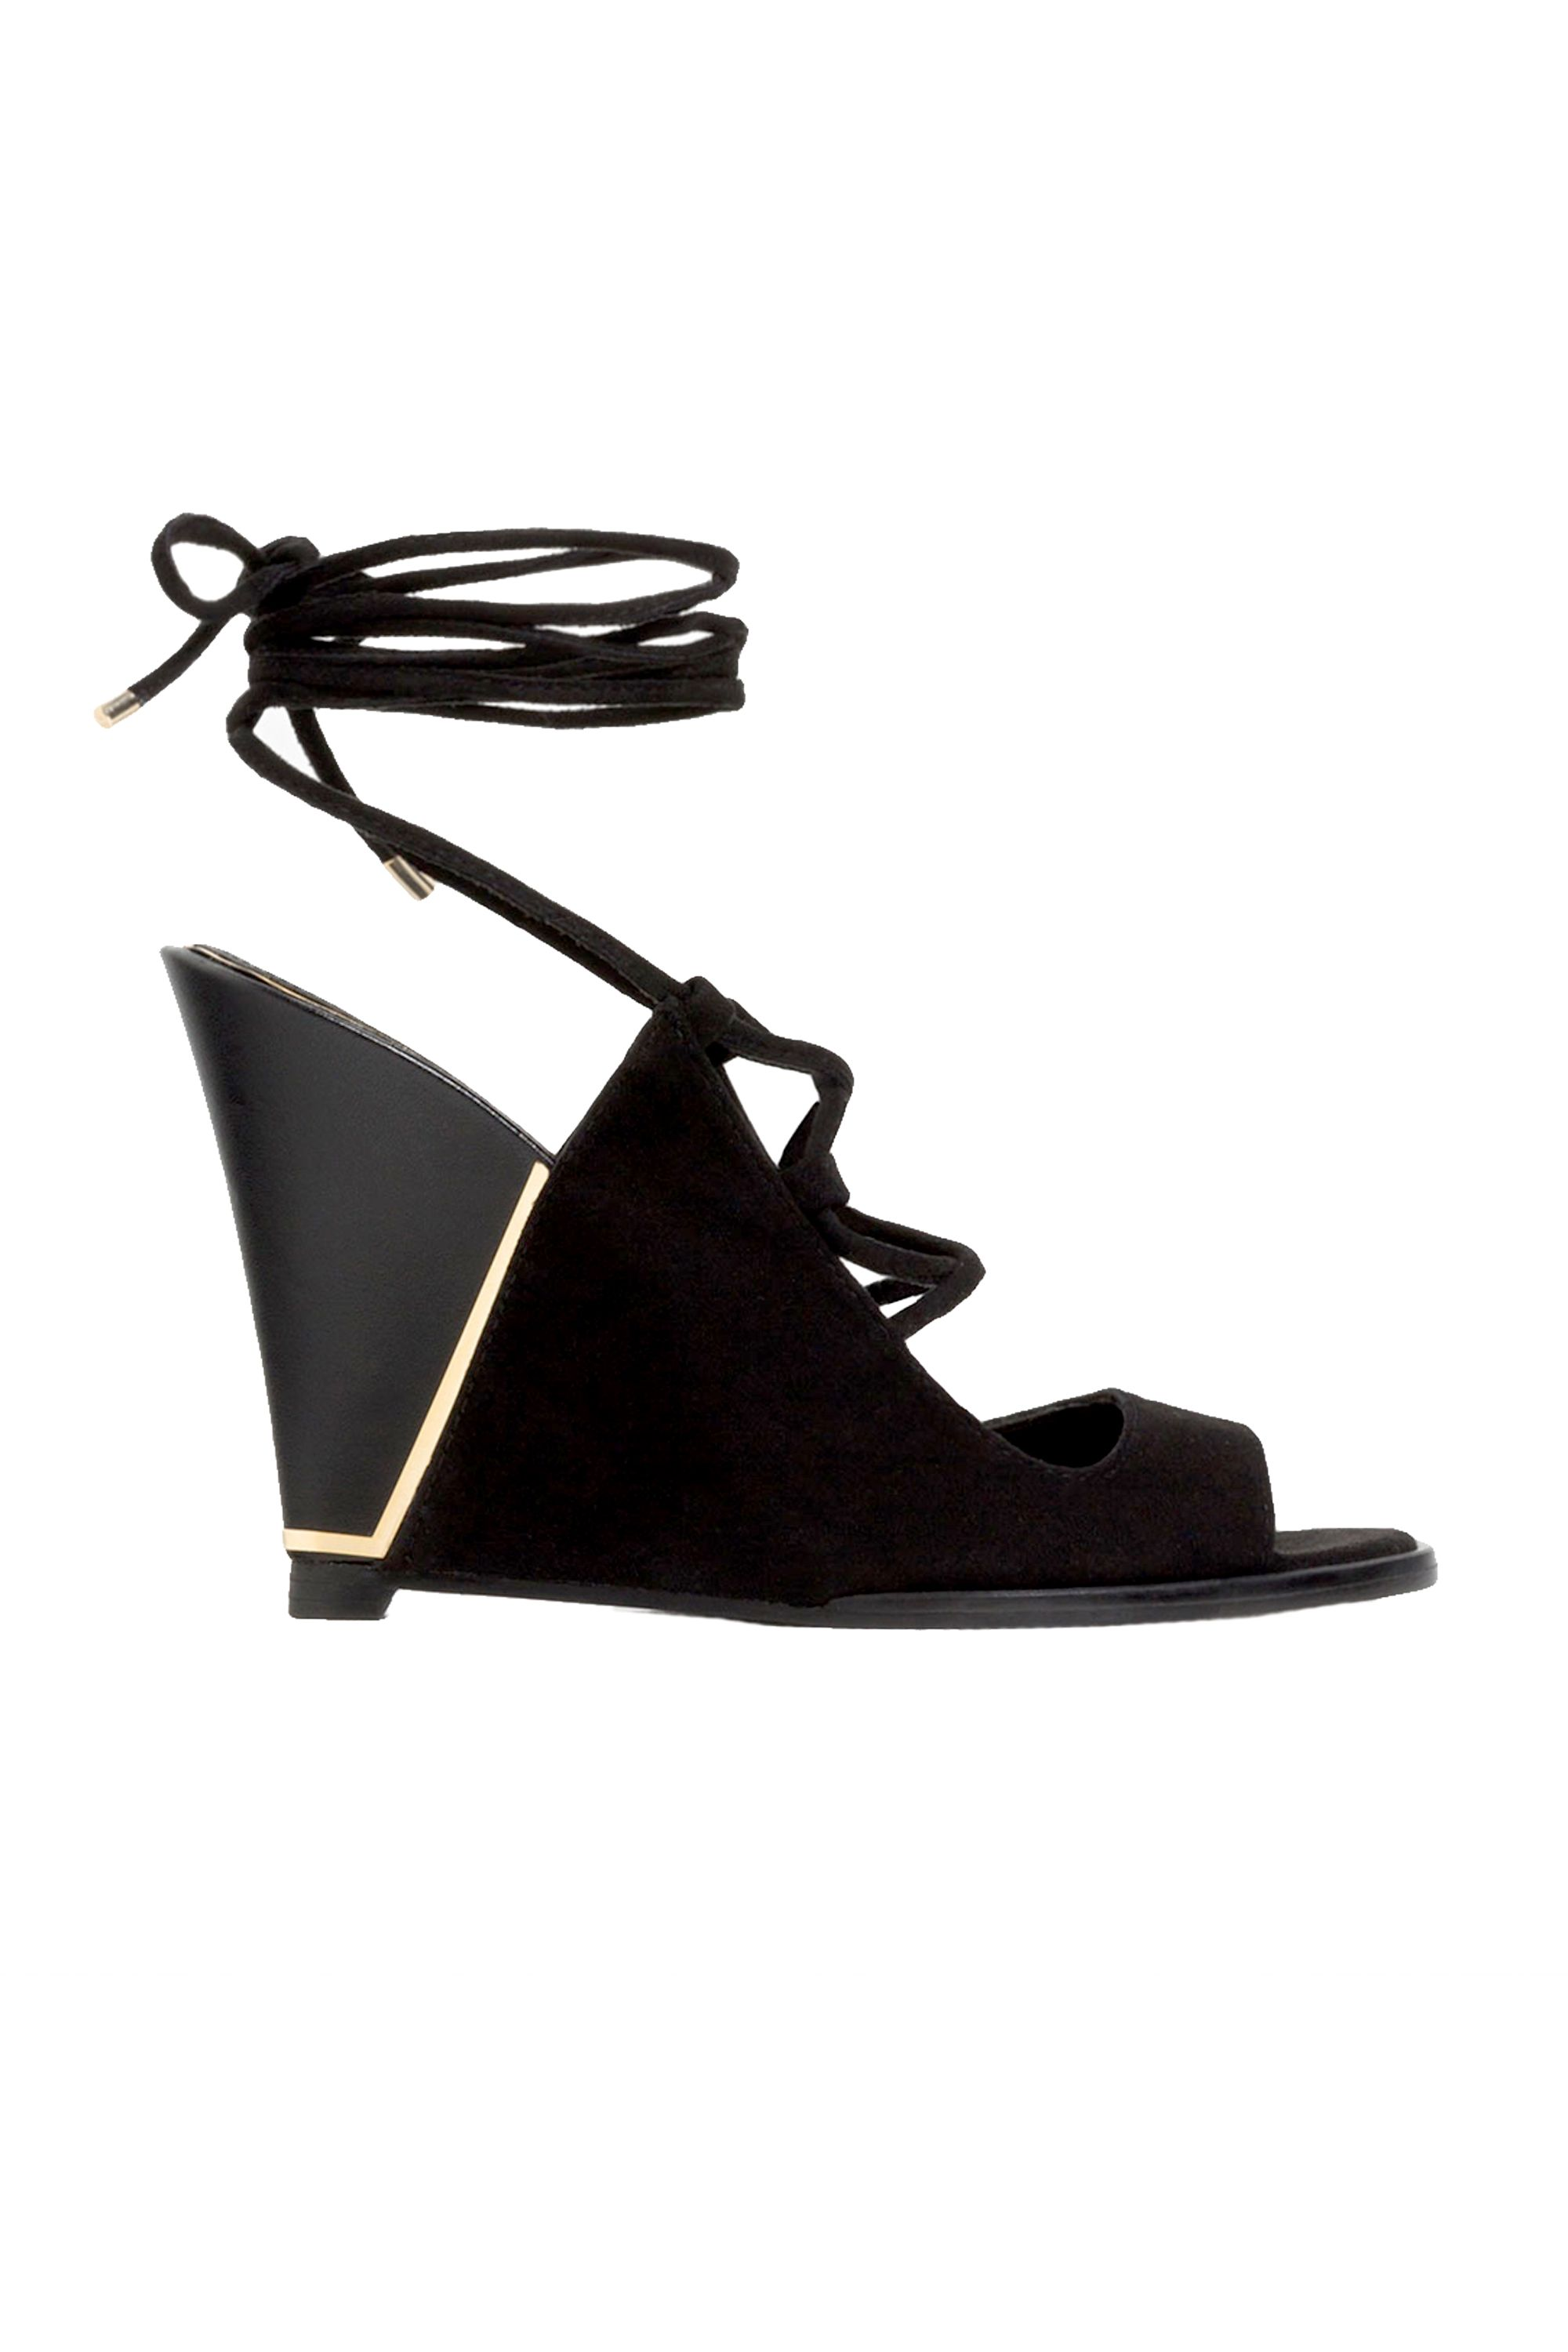 5c9350715e2 27 Wedge Sandals for Summer -27 Wedges Guaranteed to Make Summer 2016 Easier